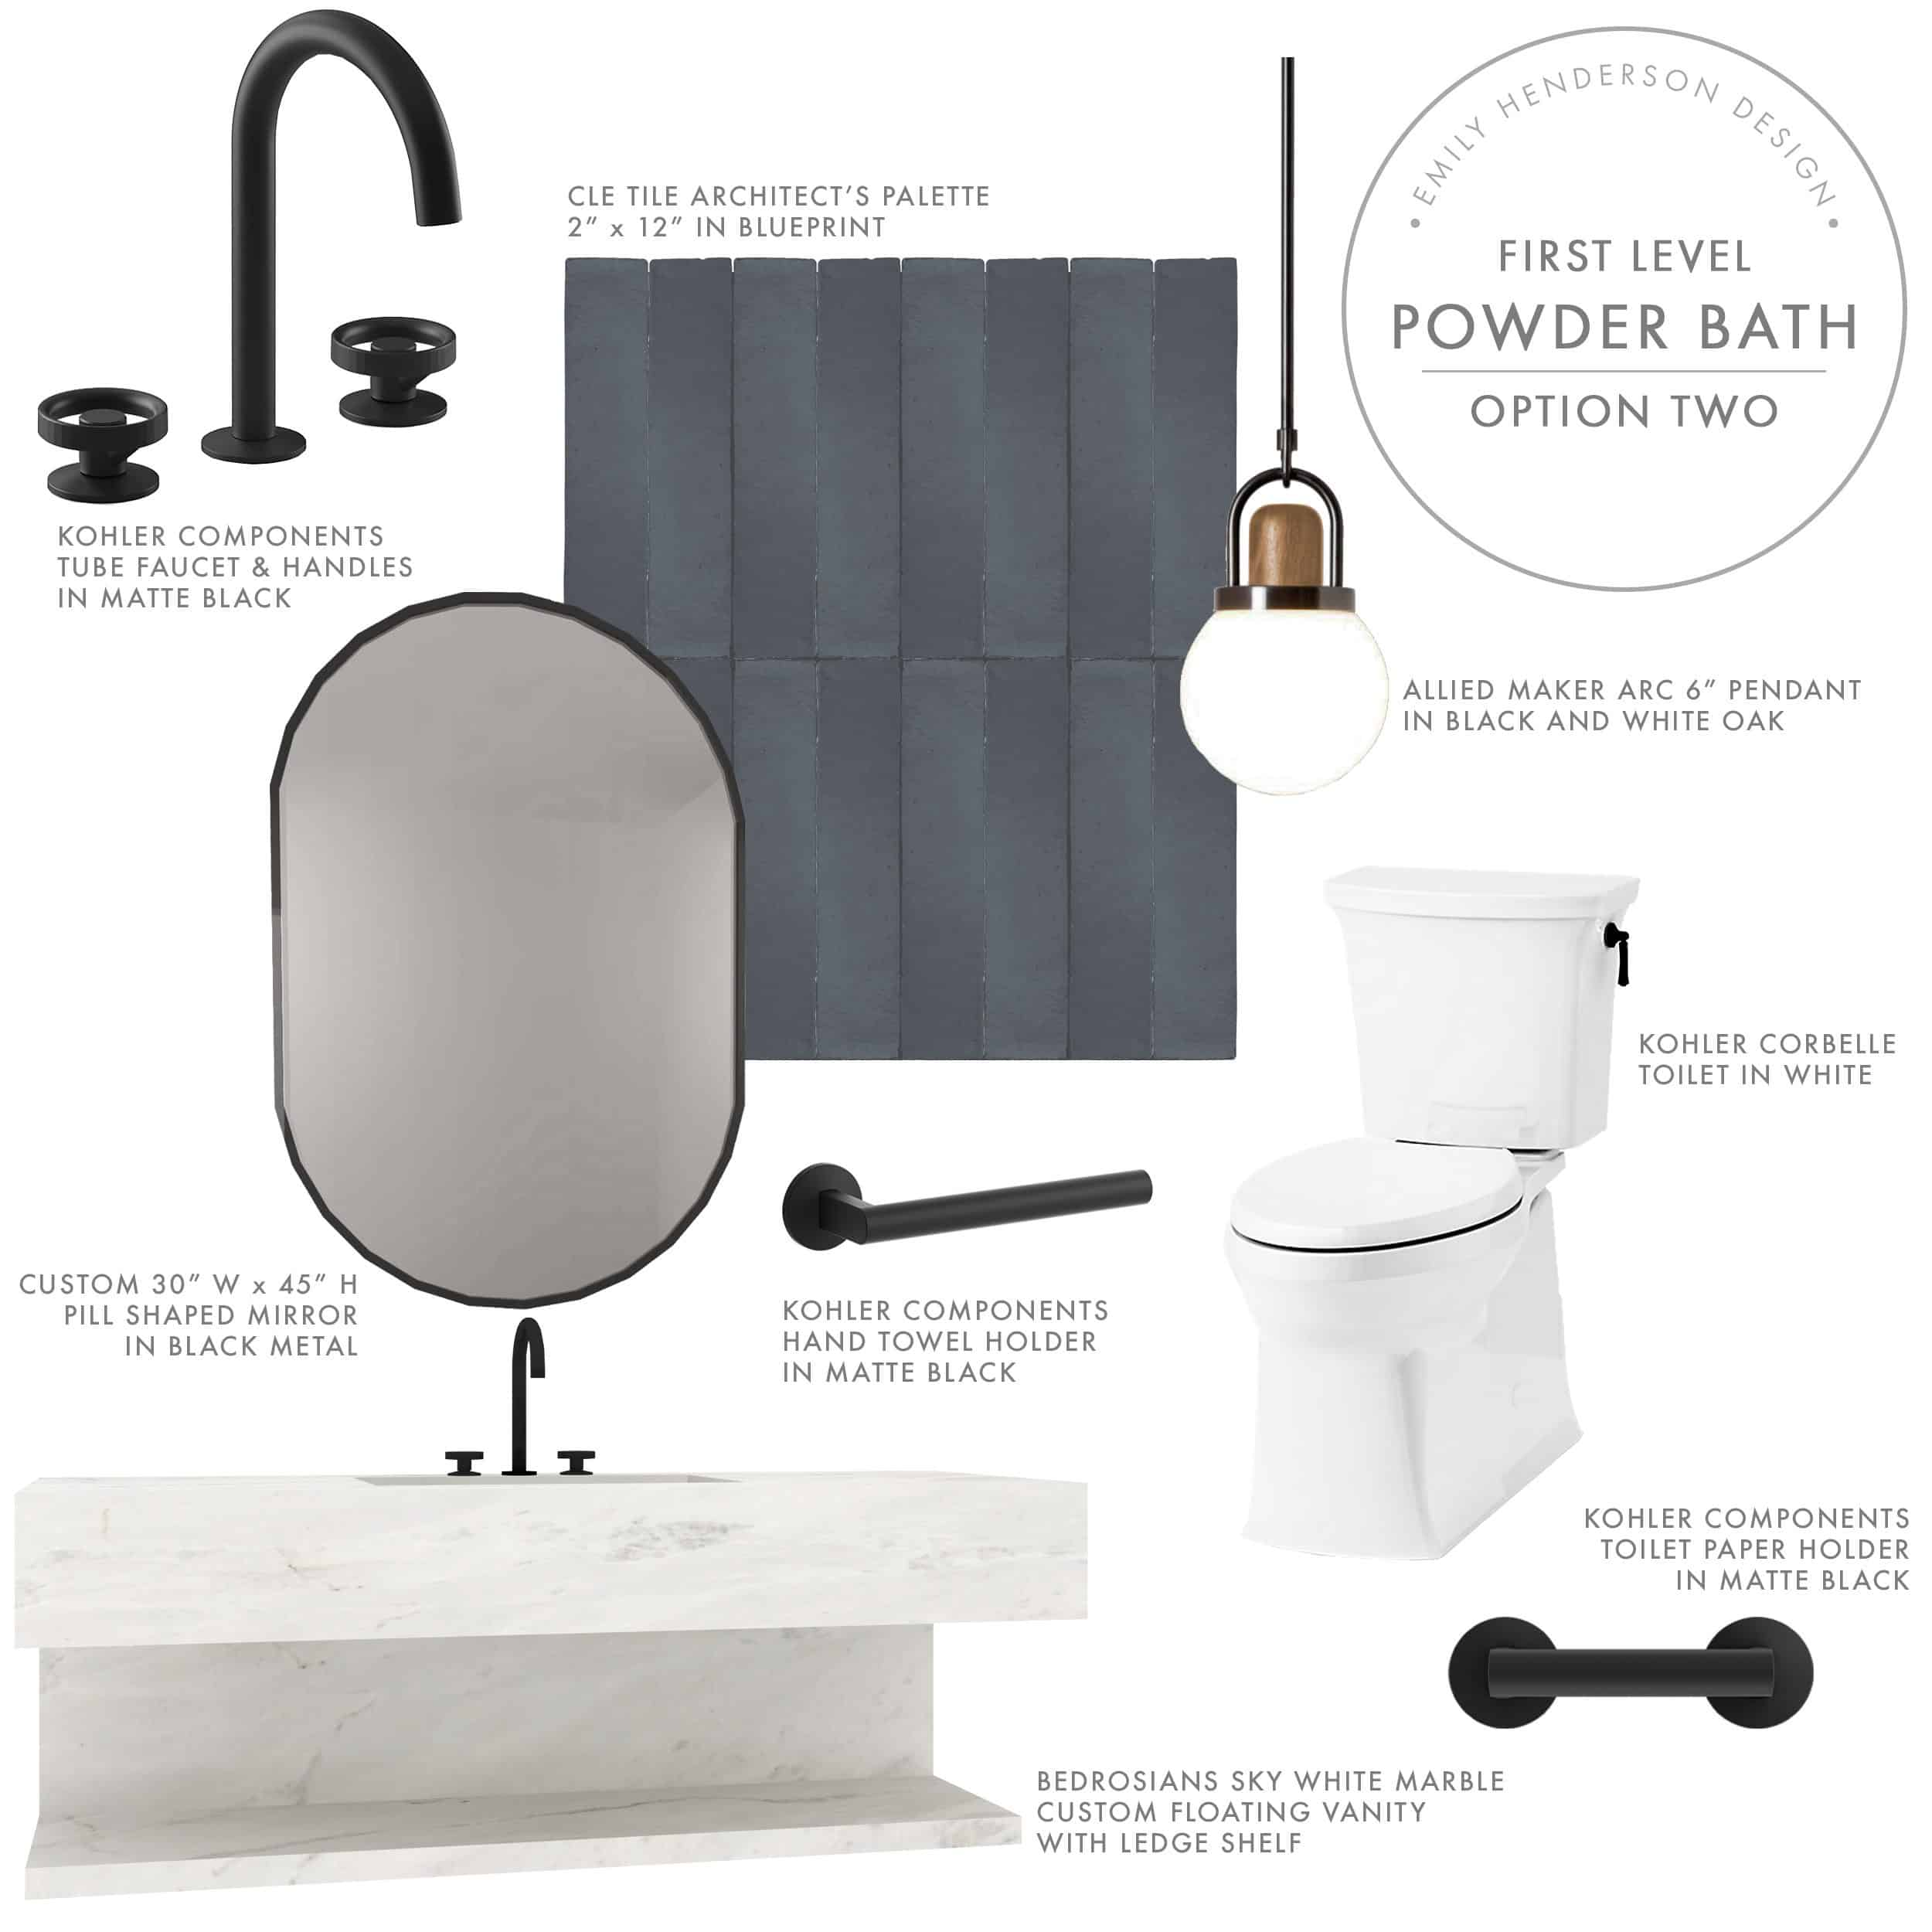 Emily Henderson Mountian Fixer I Design You Decide Powder Bath Moodboard Option Two 09.17.18